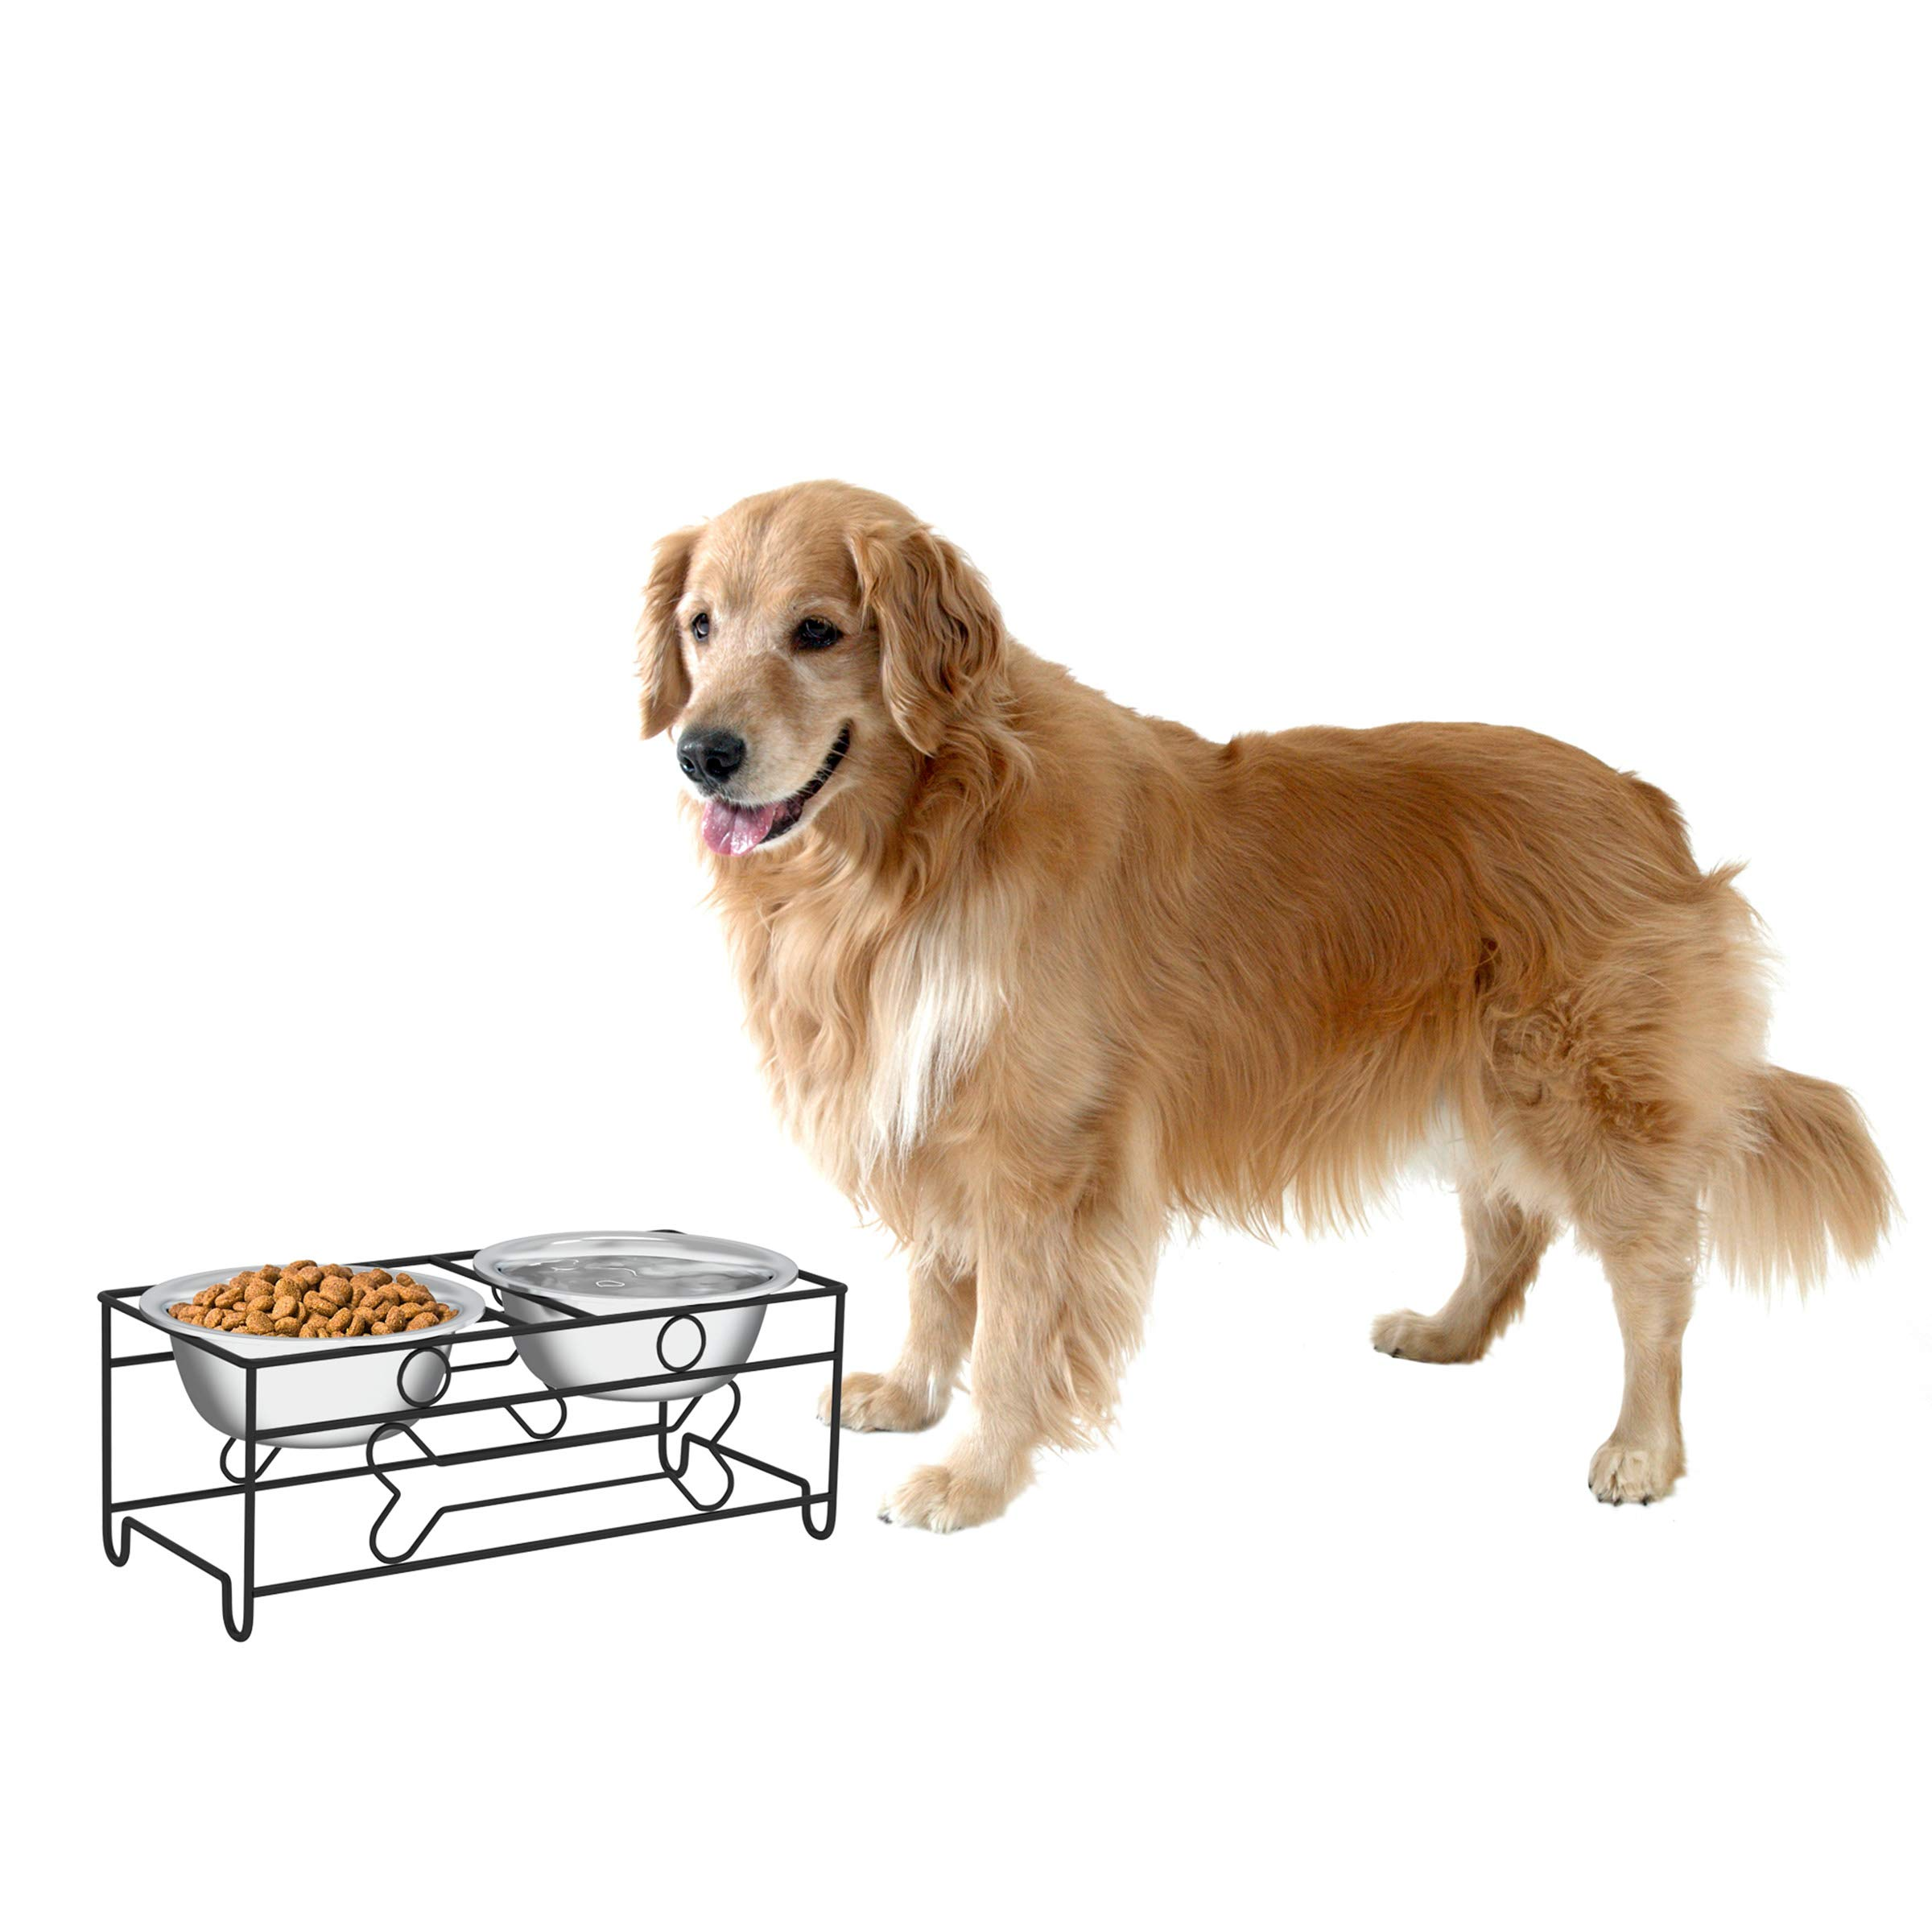 PETMAKER Stainless Steel Raised Food & Water Bowls with Decorative 6.5'' Tall Stand for Dogs & Cats-2 Bowls, 40oz Each-Elevated Feeding Station